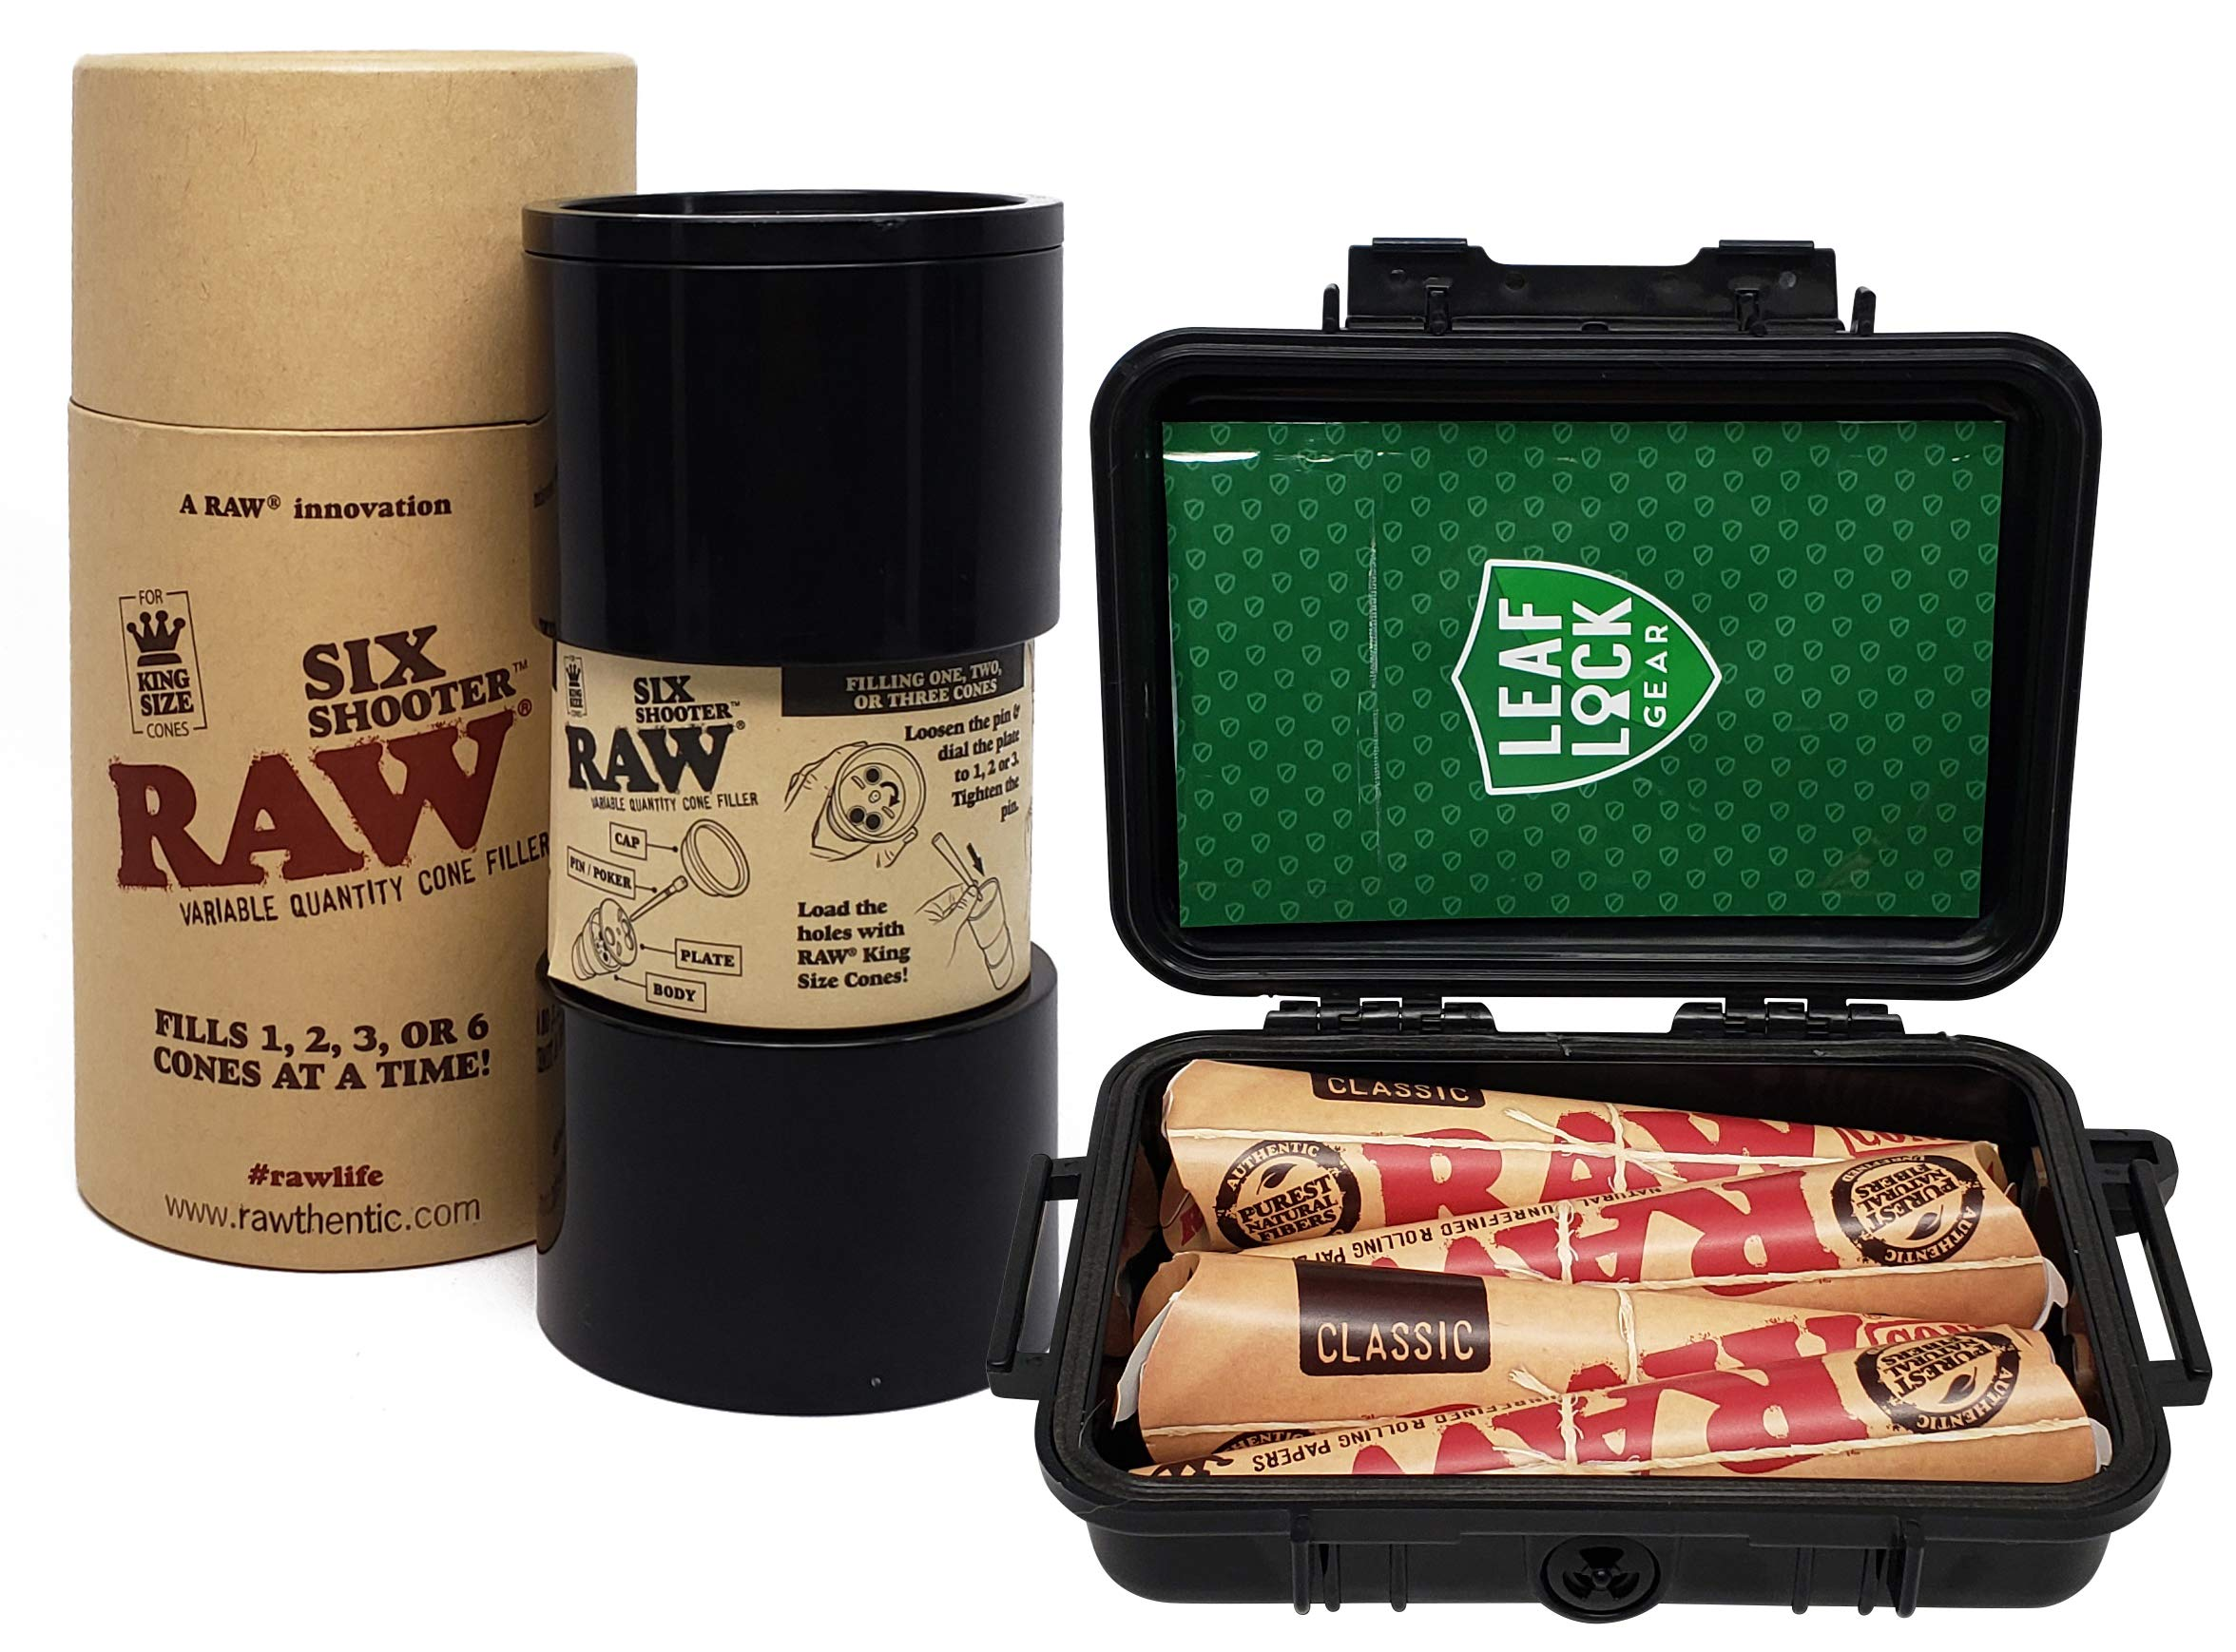 RAW Six Shooter Cone Filler with RAW Classic King Size Cones (4 Packs) Leaf Lock Gear Travel Case and Leaf Lock Gear Smell Proof Pouch by Leaf lock Gear